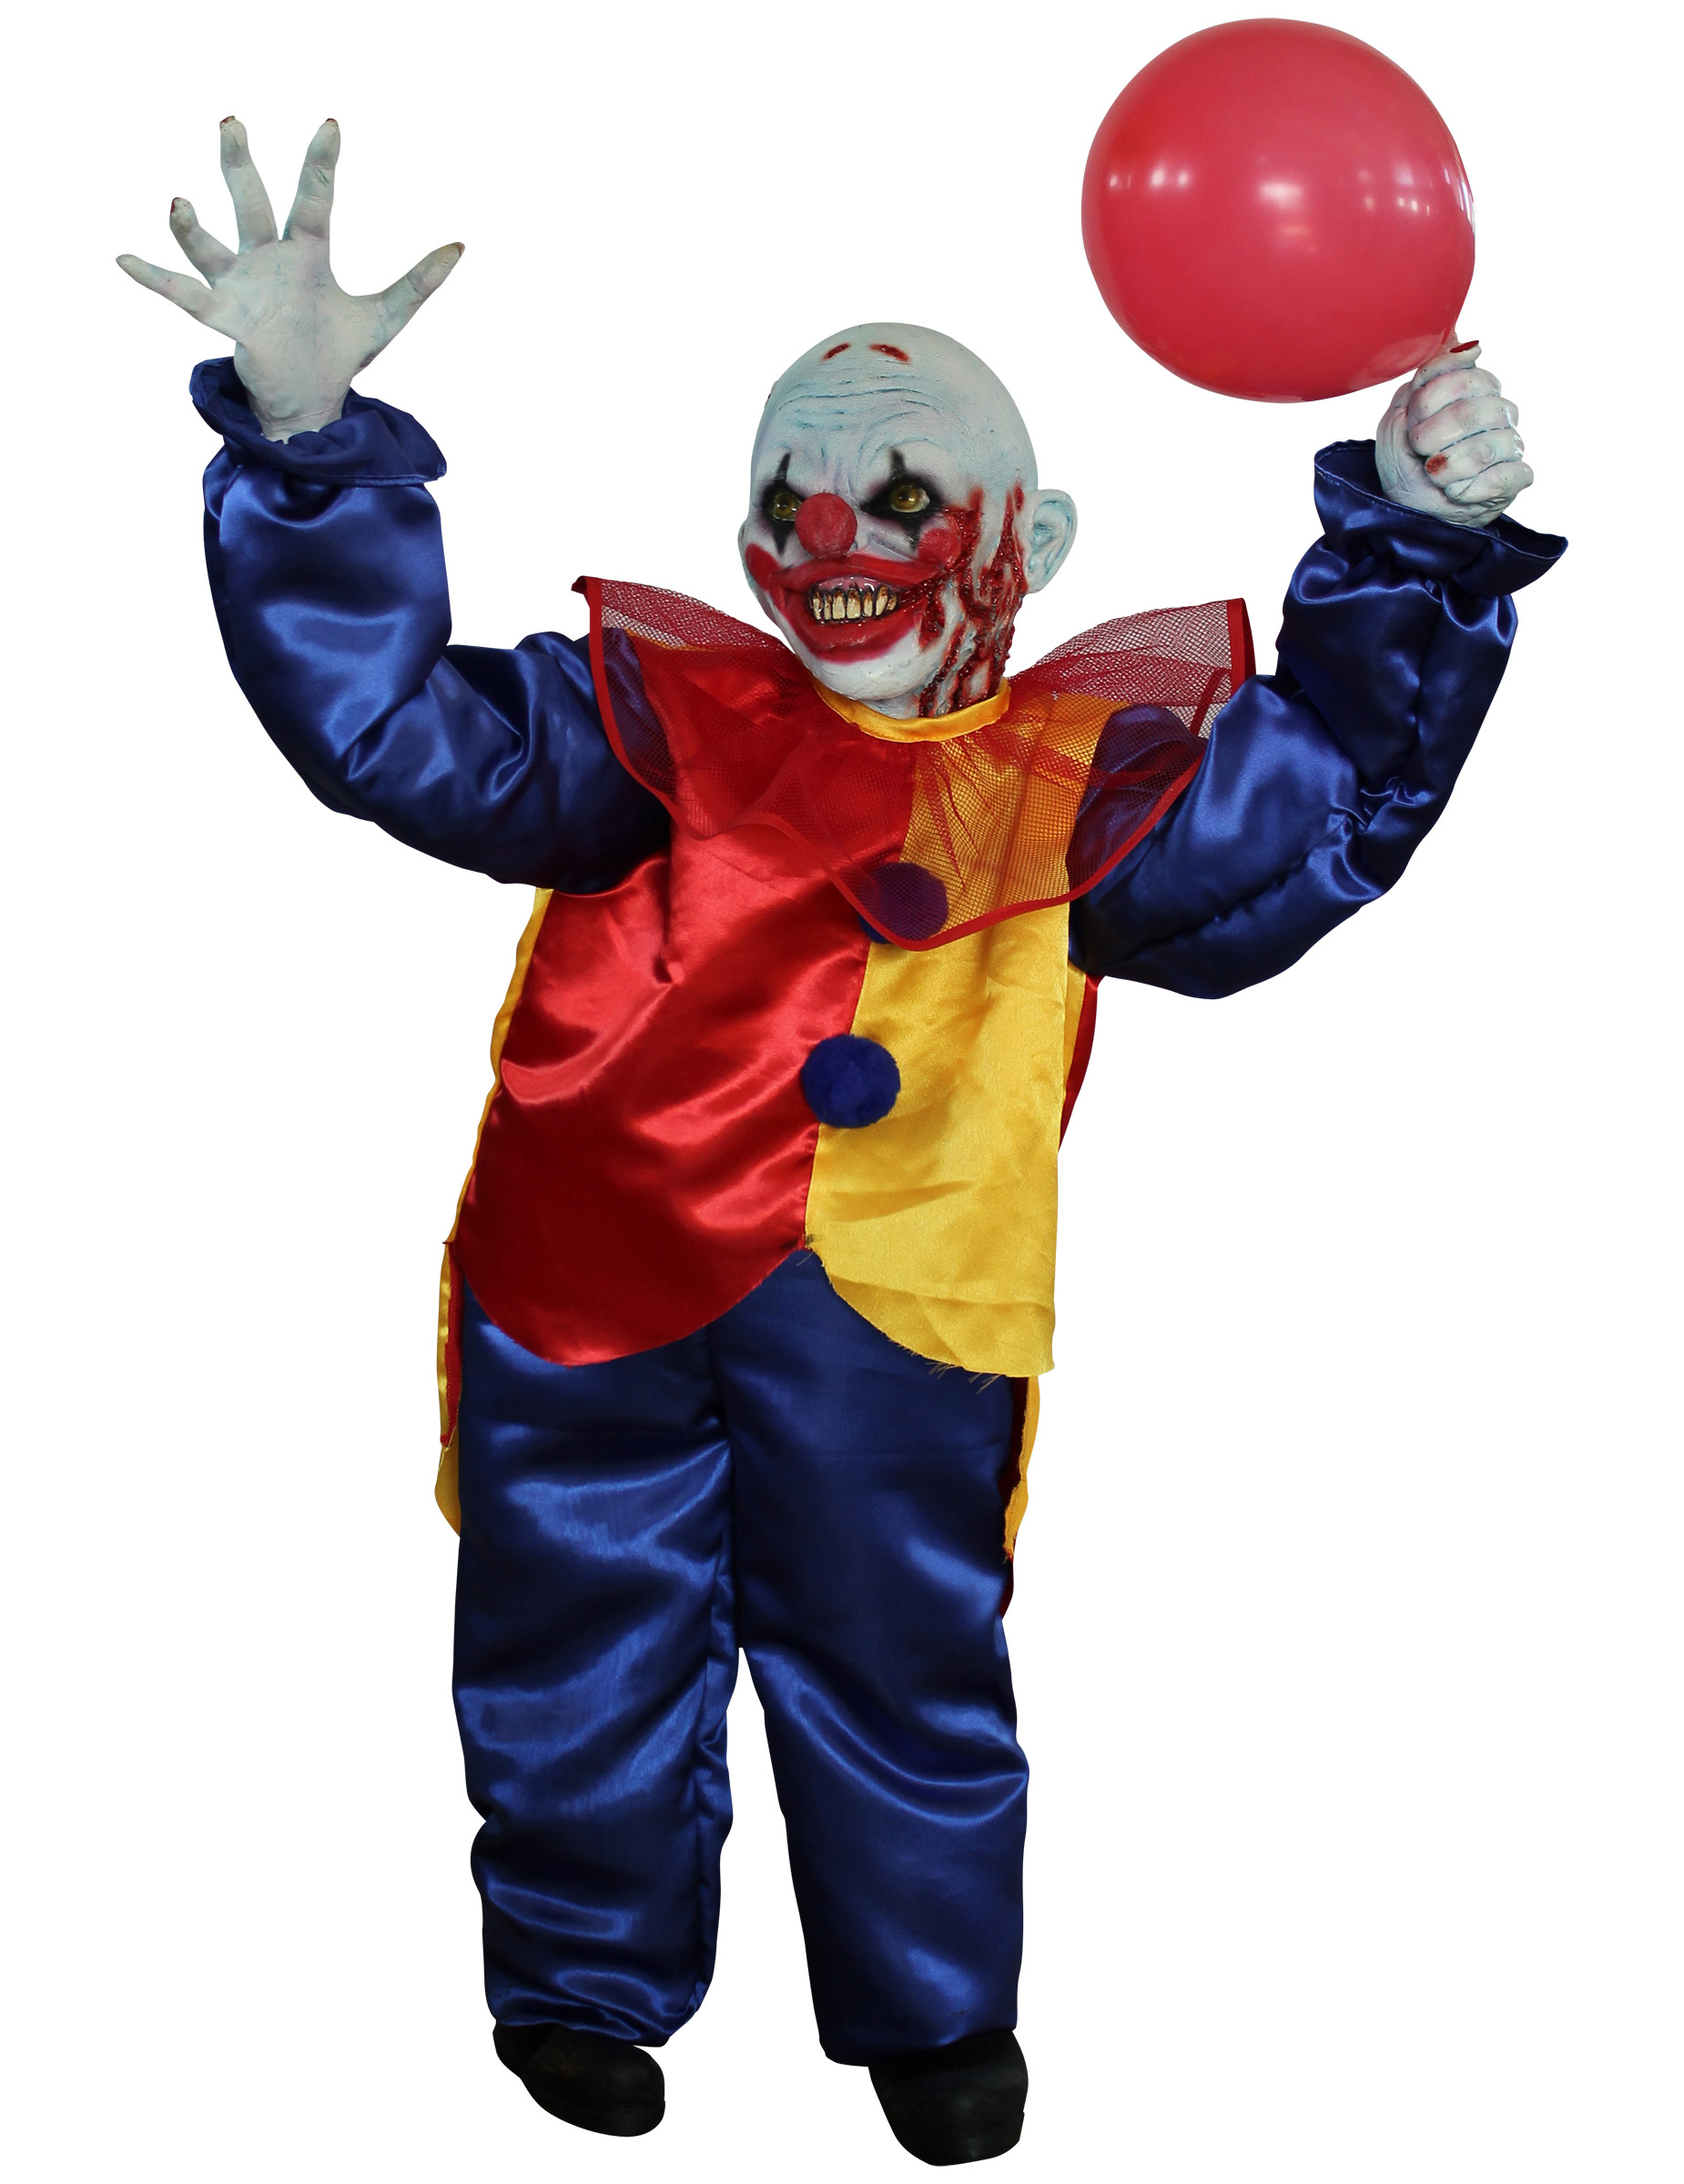 D coration clown nain halloween deguise toi achat de for Decoration fenetre clown